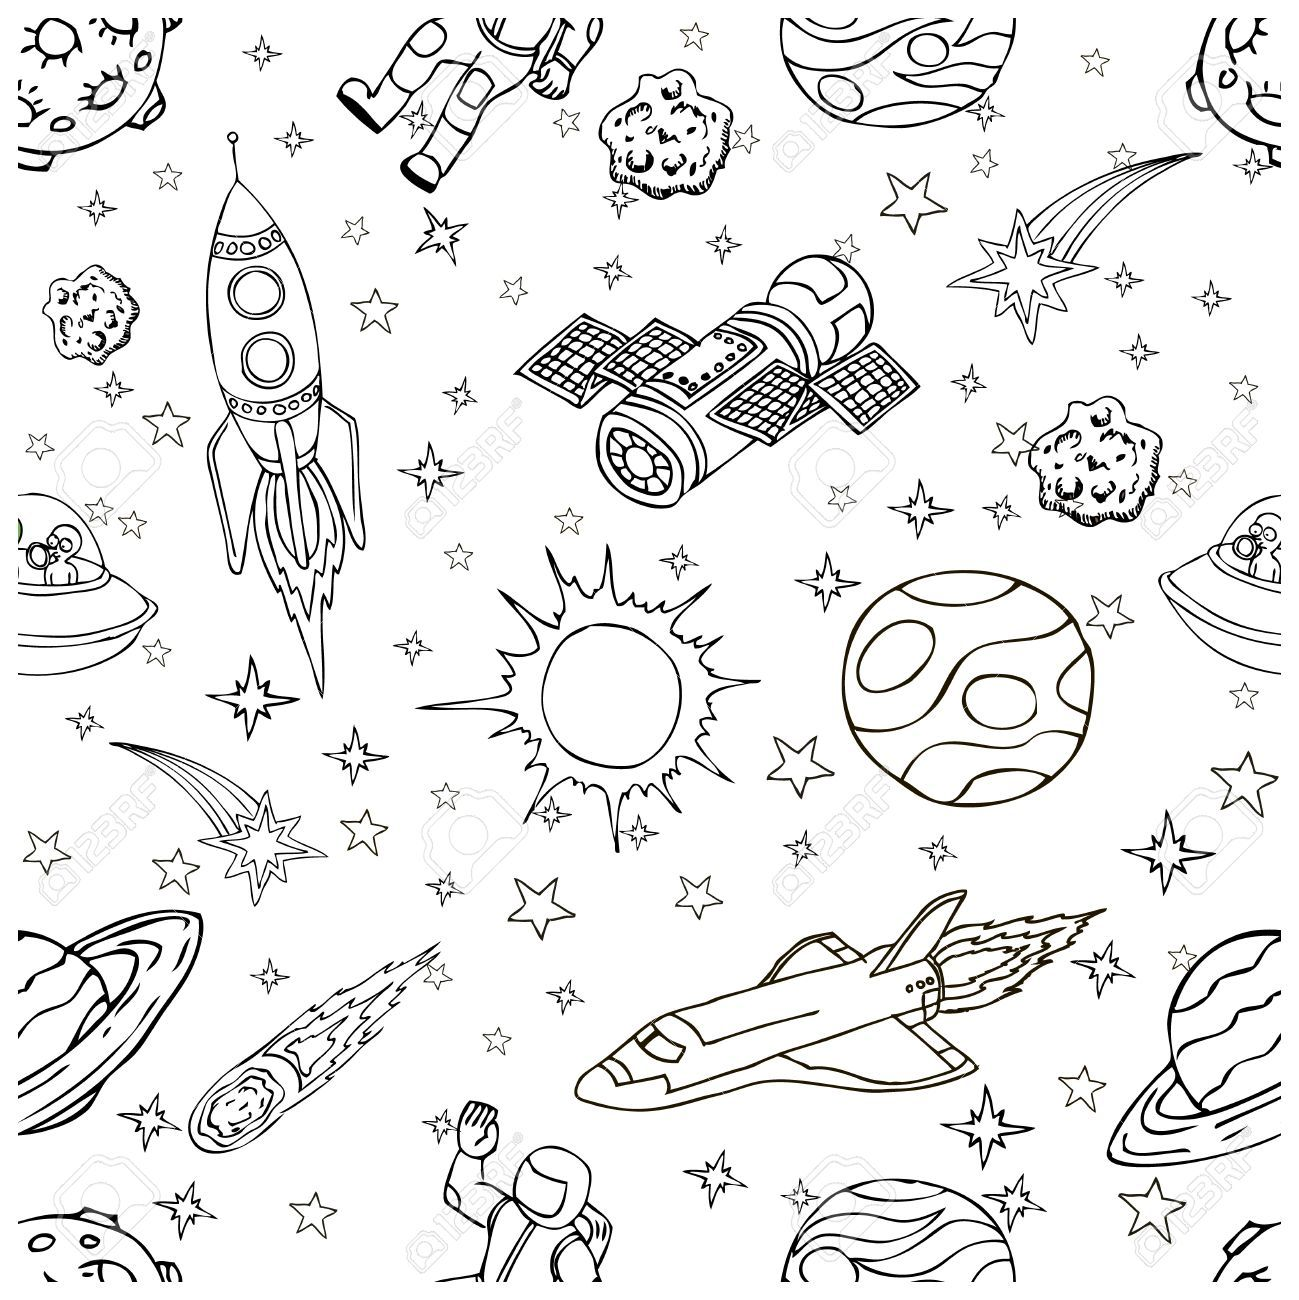 Outer Space Doodles Symbols And Design Elements